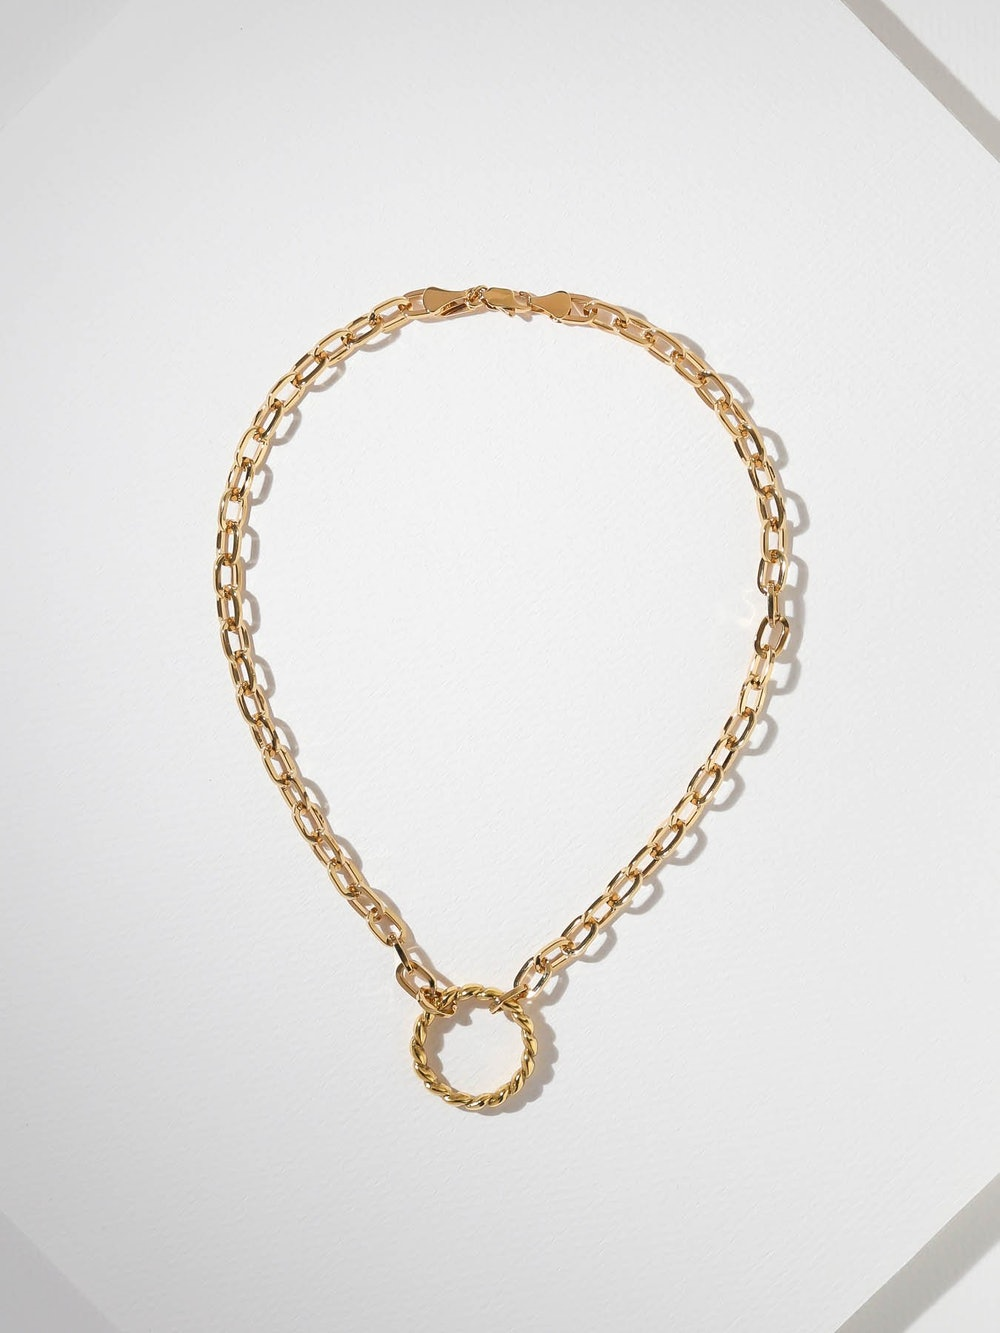 The Sublime Necklace